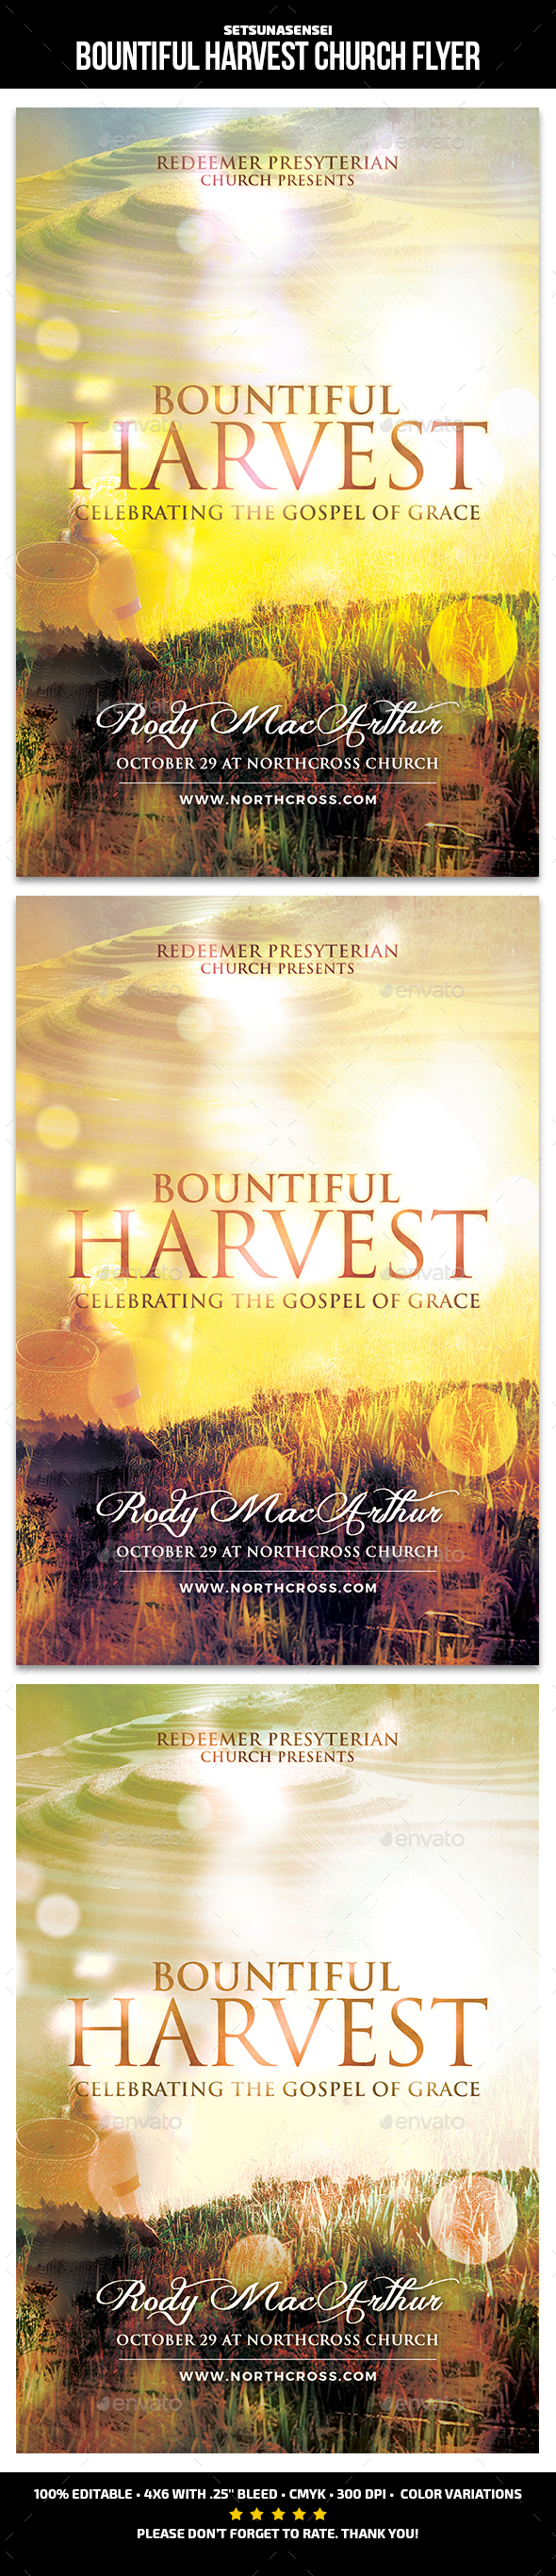 Bountiful Harvest Church Flye - Church Flyers